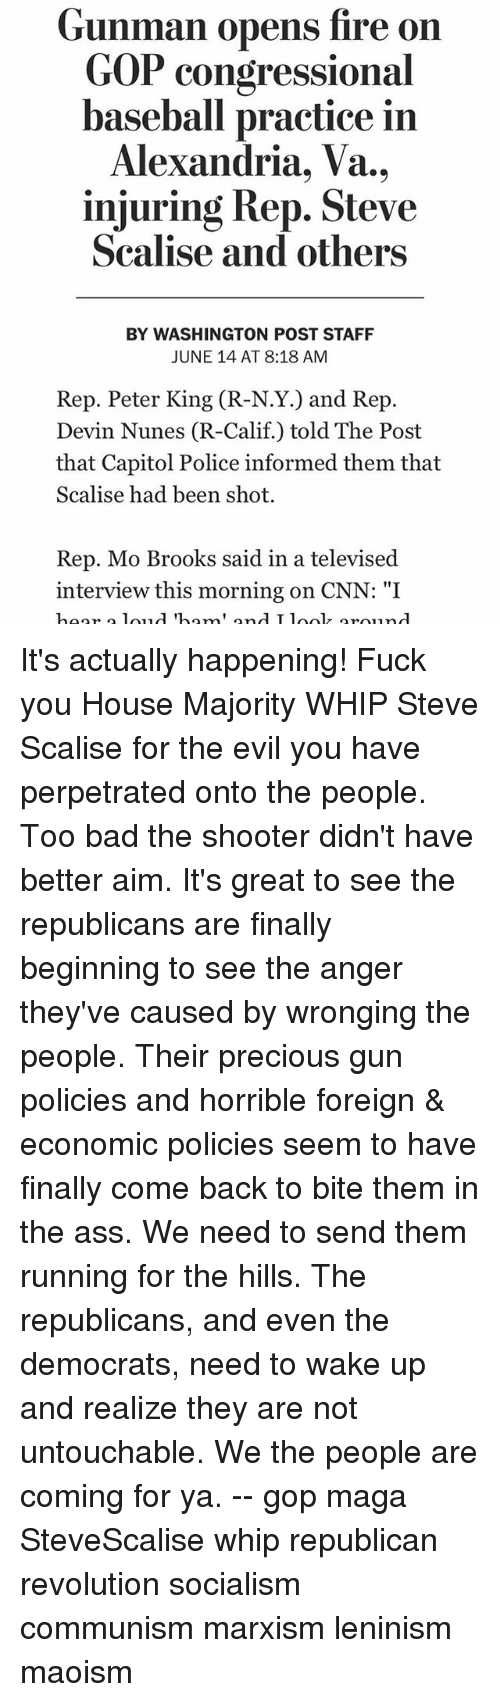 """Ass, Bad, and Baseball: Gunman opens fire on  GOP congressional  baseball practice in  Alexandria, Va.,  injuring Rep. Steve  Scalise and others  BY WASHINGTON POST STAFF  JUNE 14 AT 8:18 AM  Rep. Peter King (R-N.Y.) and Rep.  Devin Nunes (R-Calif.) told The Post  that Capitol Police informed them that  Scalise had been shot  Rep. Mo Brooks said in a televised  interview this morning on CNN: """"I  hoor  d Thom  ond T lool round It's actually happening! Fuck you House Majority WHIP Steve Scalise for the evil you have perpetrated onto the people. Too bad the shooter didn't have better aim. It's great to see the republicans are finally beginning to see the anger they've caused by wronging the people. Their precious gun policies and horrible foreign & economic policies seem to have finally come back to bite them in the ass. We need to send them running for the hills. The republicans, and even the democrats, need to wake up and realize they are not untouchable. We the people are coming for ya. -- gop maga SteveScalise whip republican revolution socialism communism marxism leninism maoism"""